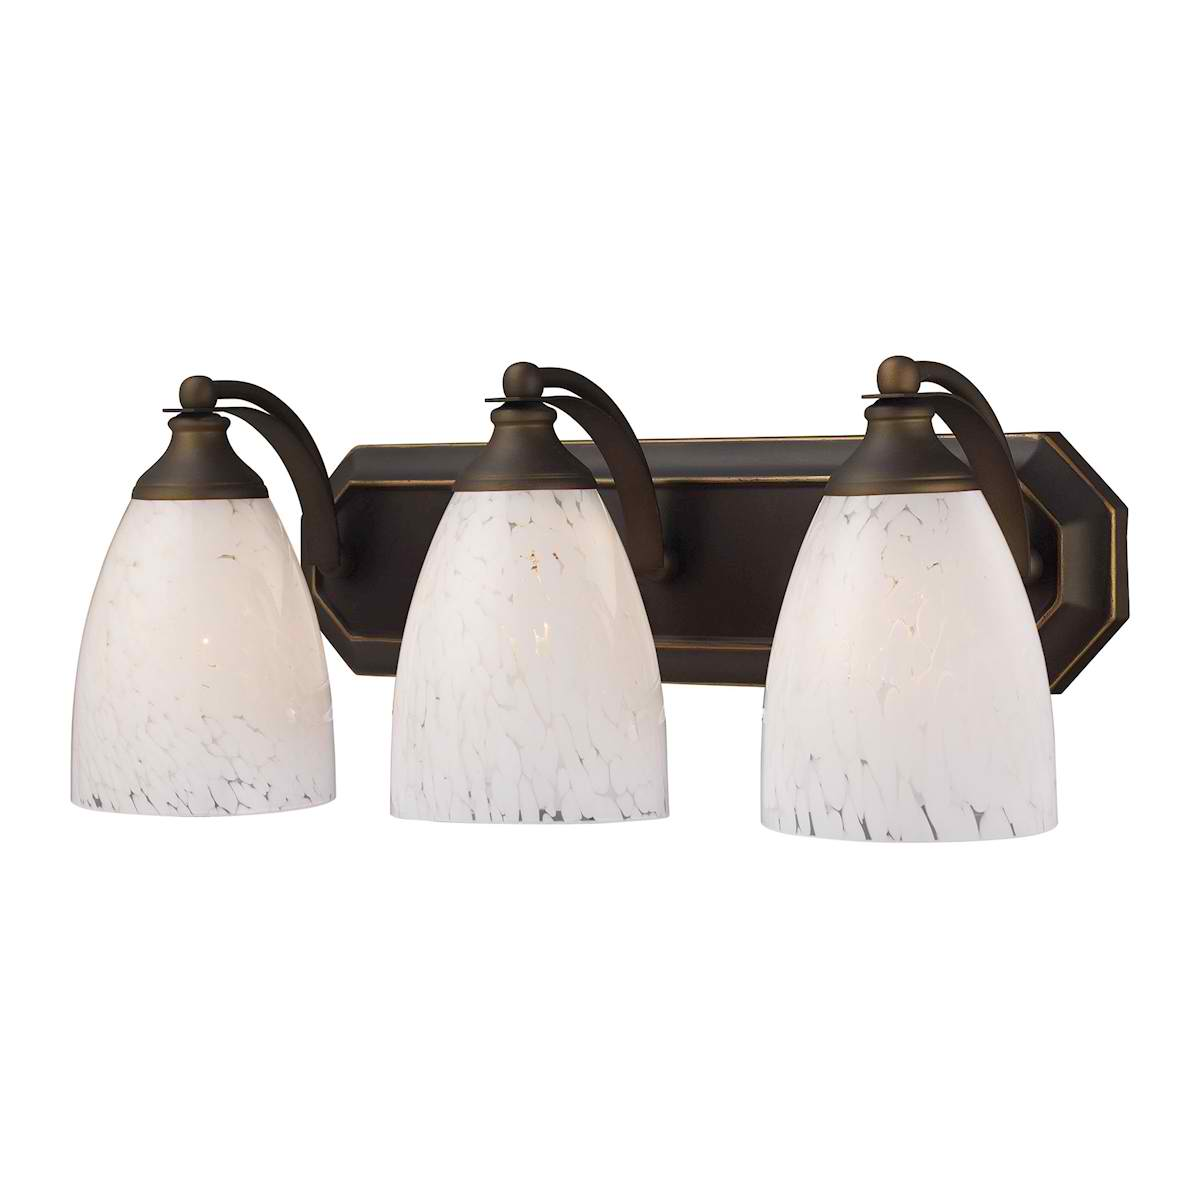 Vanity 3 Light Aged Bronze with Snow White Glass